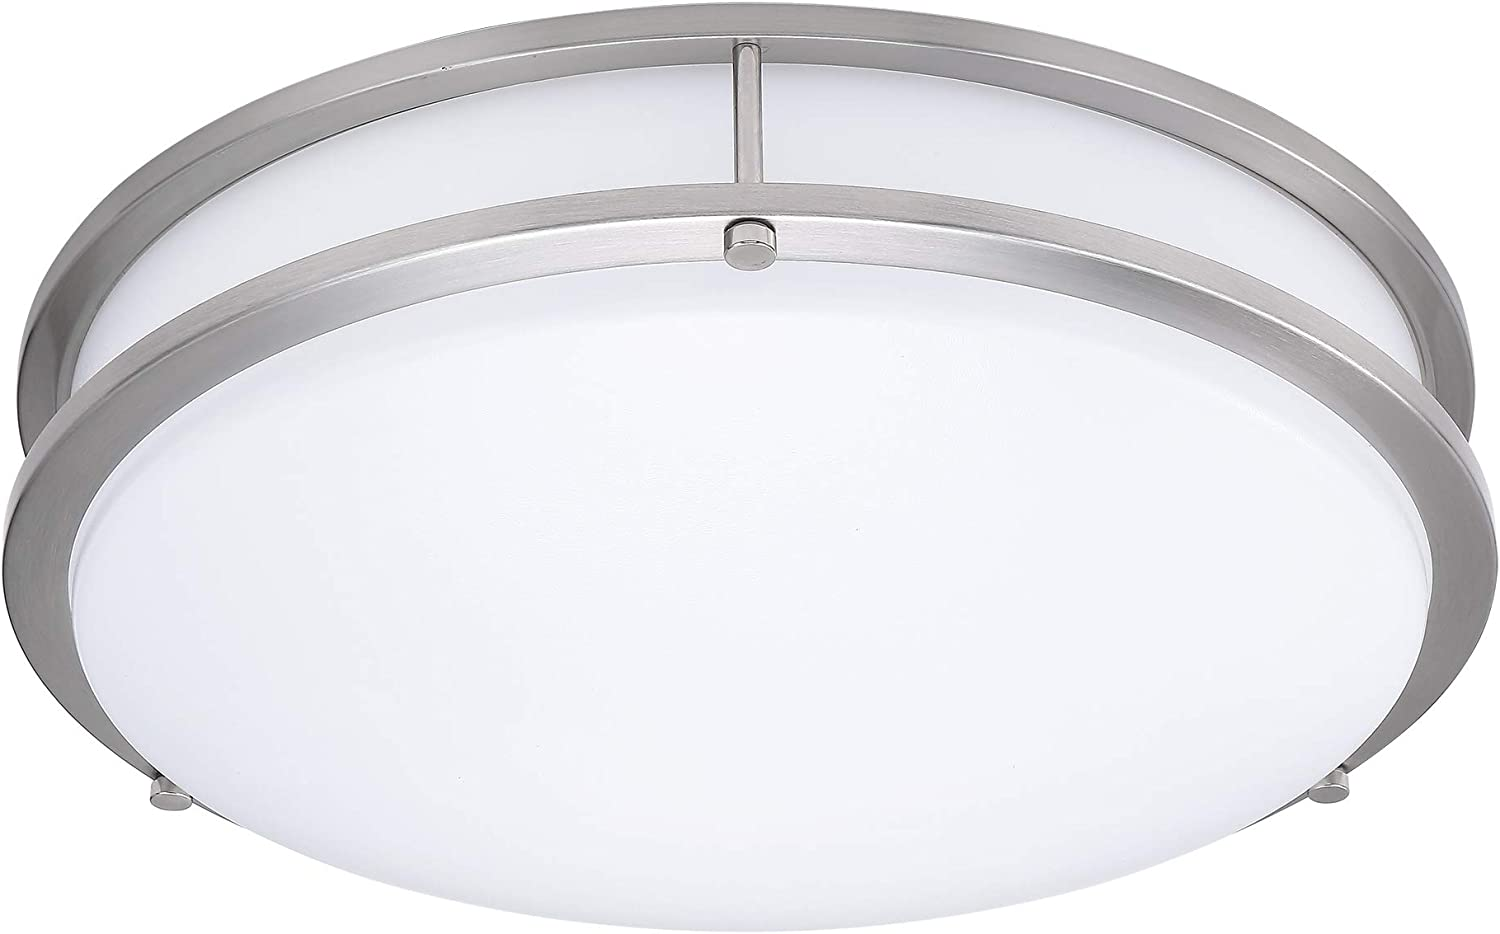 (1 Pack) 14-Inch Double Ring Dimmable LED Flush Mount Ceiling Light, 22W (100W Equivalent), 1800lm, 4000K Natural White, Brushed Nickel Finish with Plastic Shade, ETL Listed, Commercial or Residential